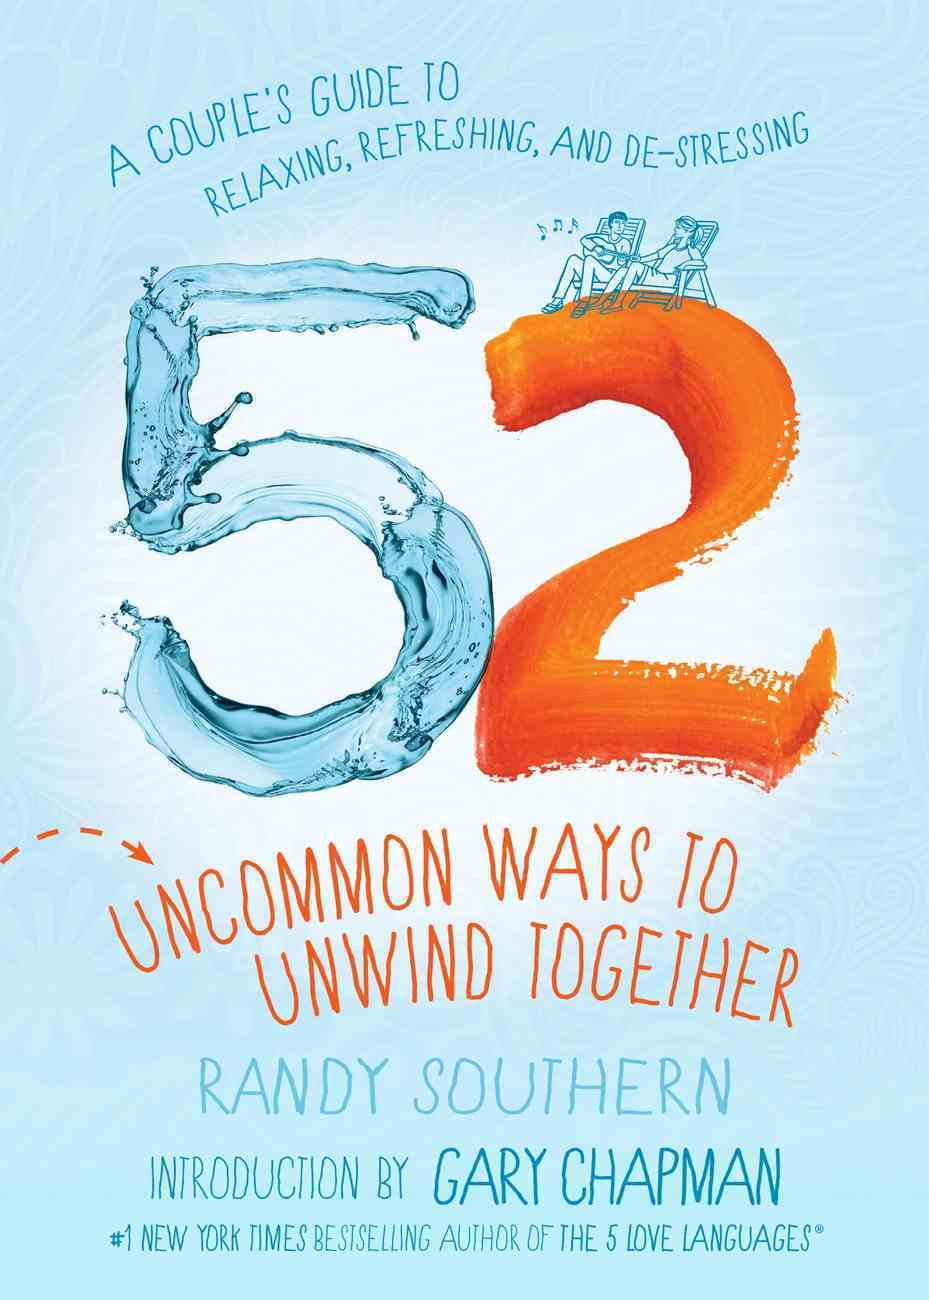 52 Uncommon Ways to Unwind Together: A Couple's Guide to Relaxing, Refreshing, and De-Stressing Paperback